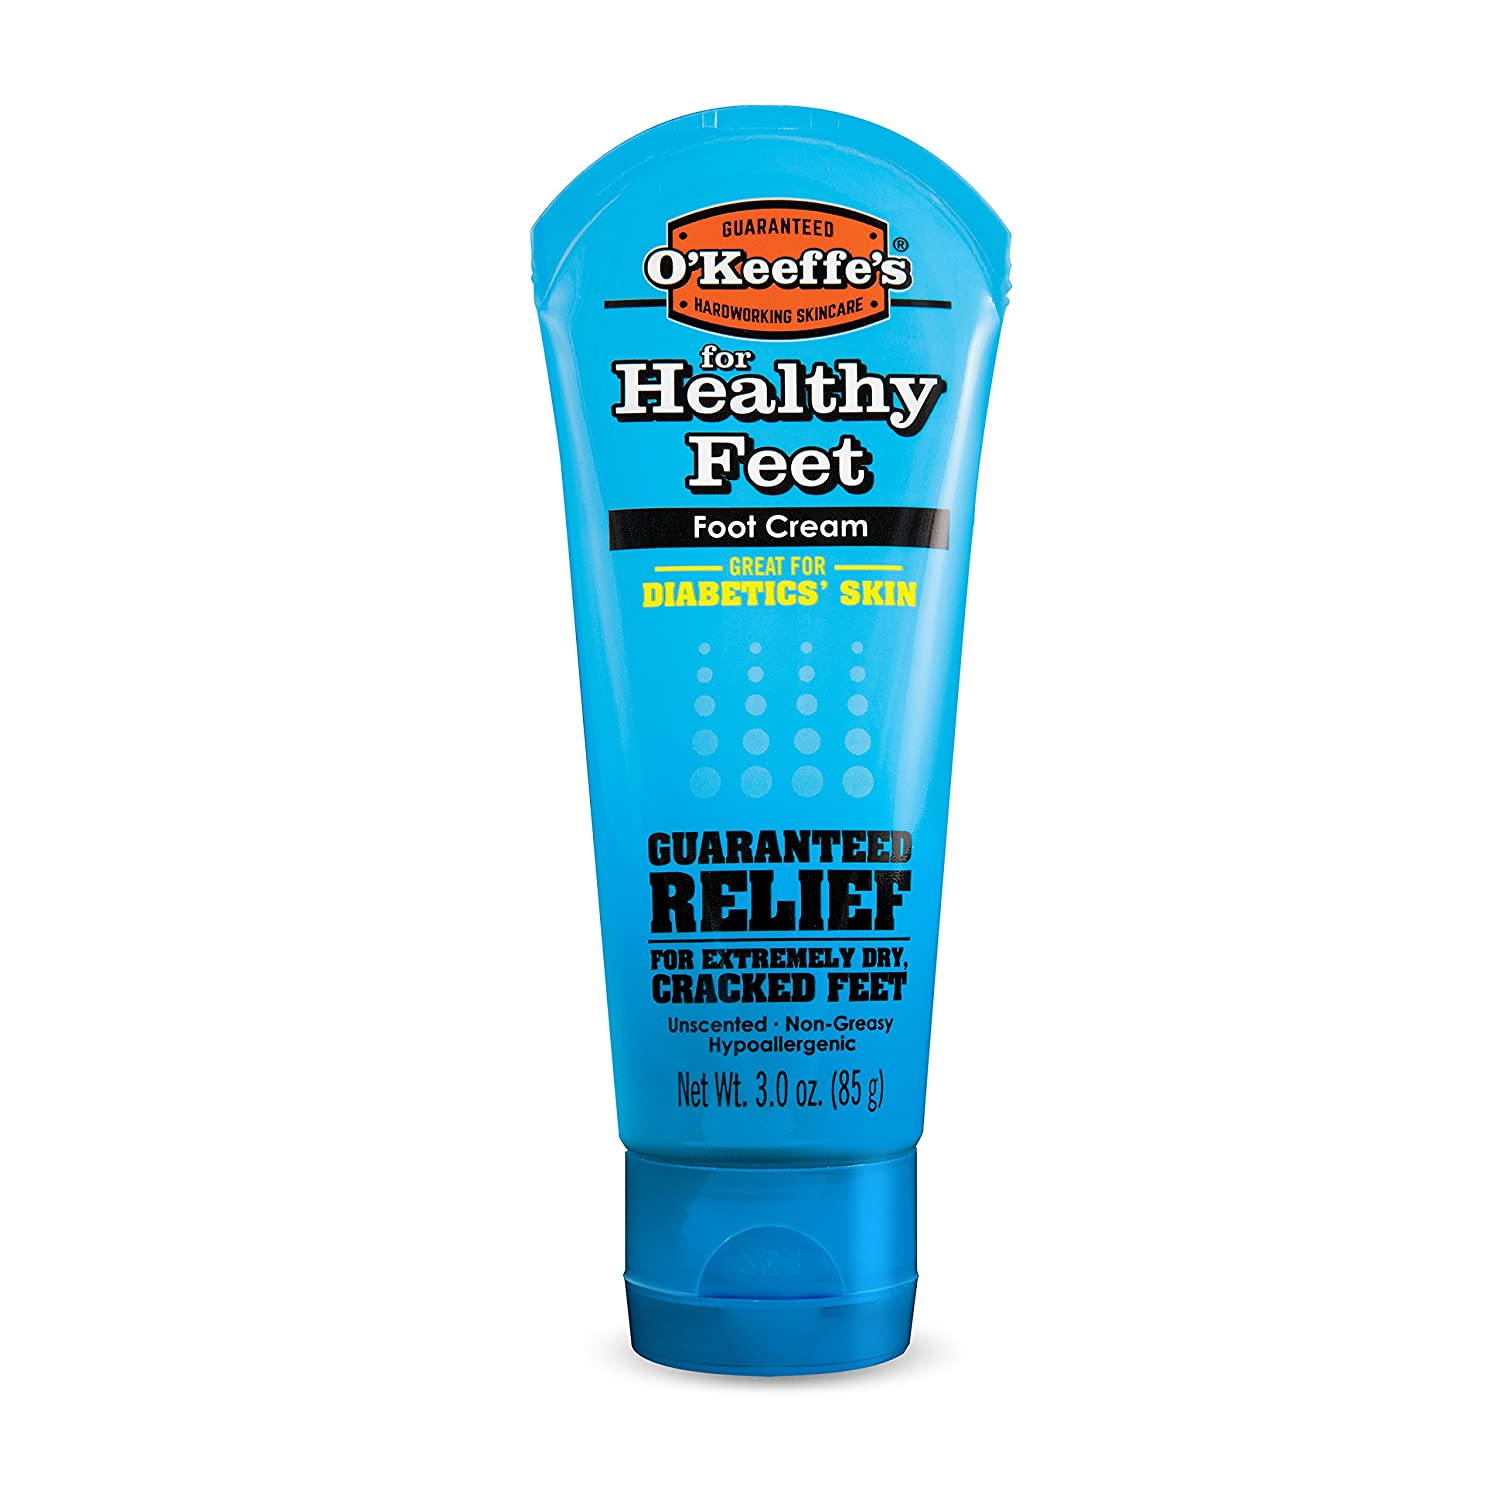 O'Keeffe's K0280004 for Healthy Feet Foot Cream, 3 oz, Tube Gorilla Glue